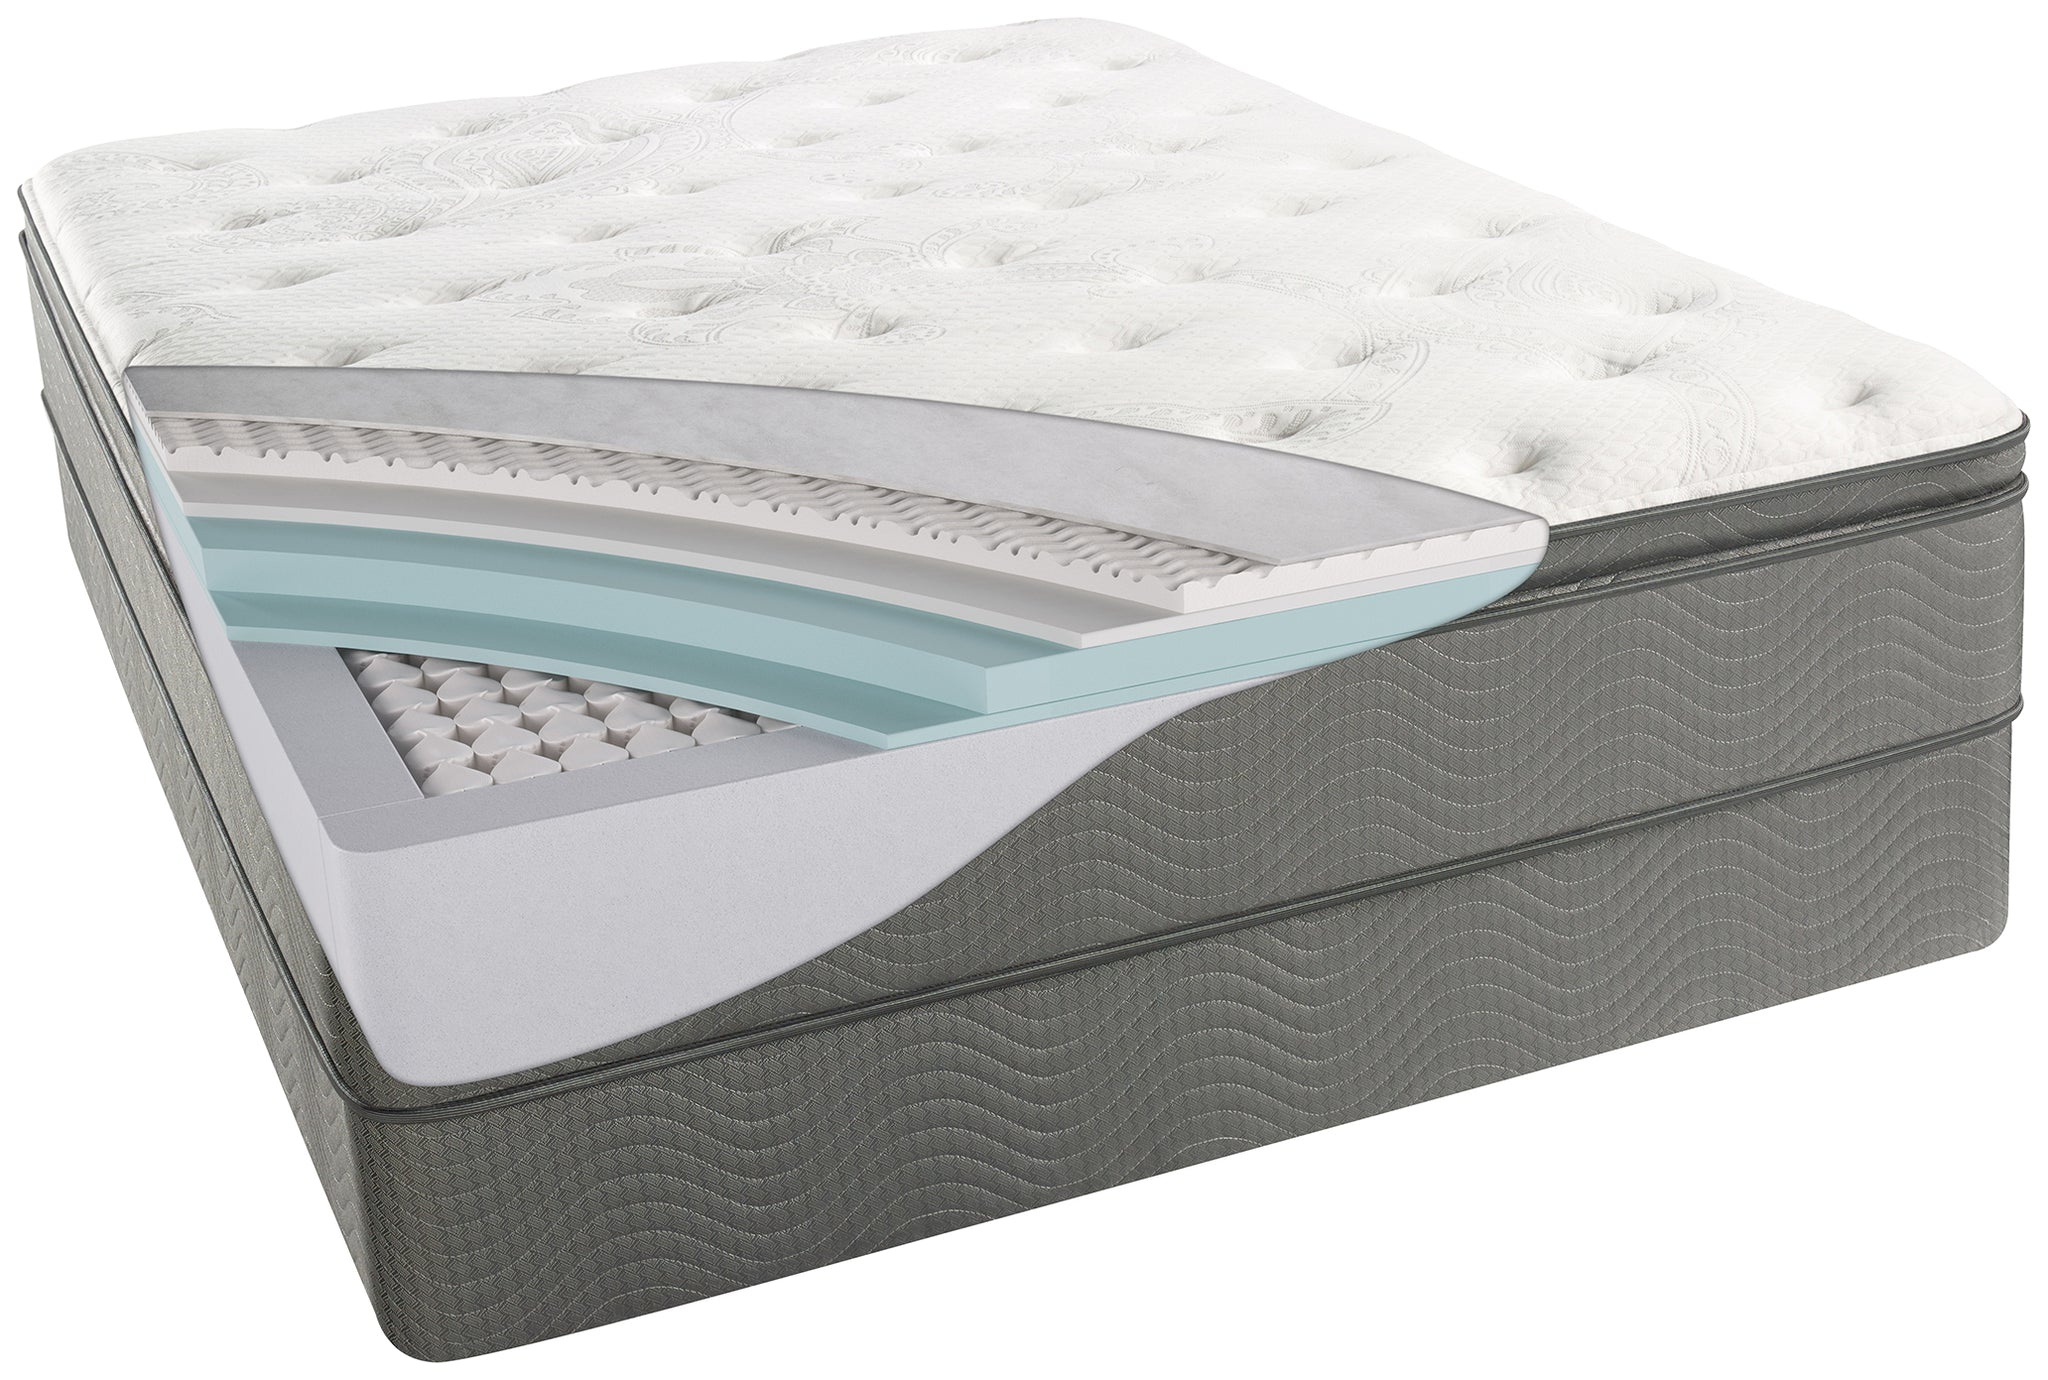 mattresses relyon delivery pillow ruby from c mattress htm home img topper for worldstores everything the day next top